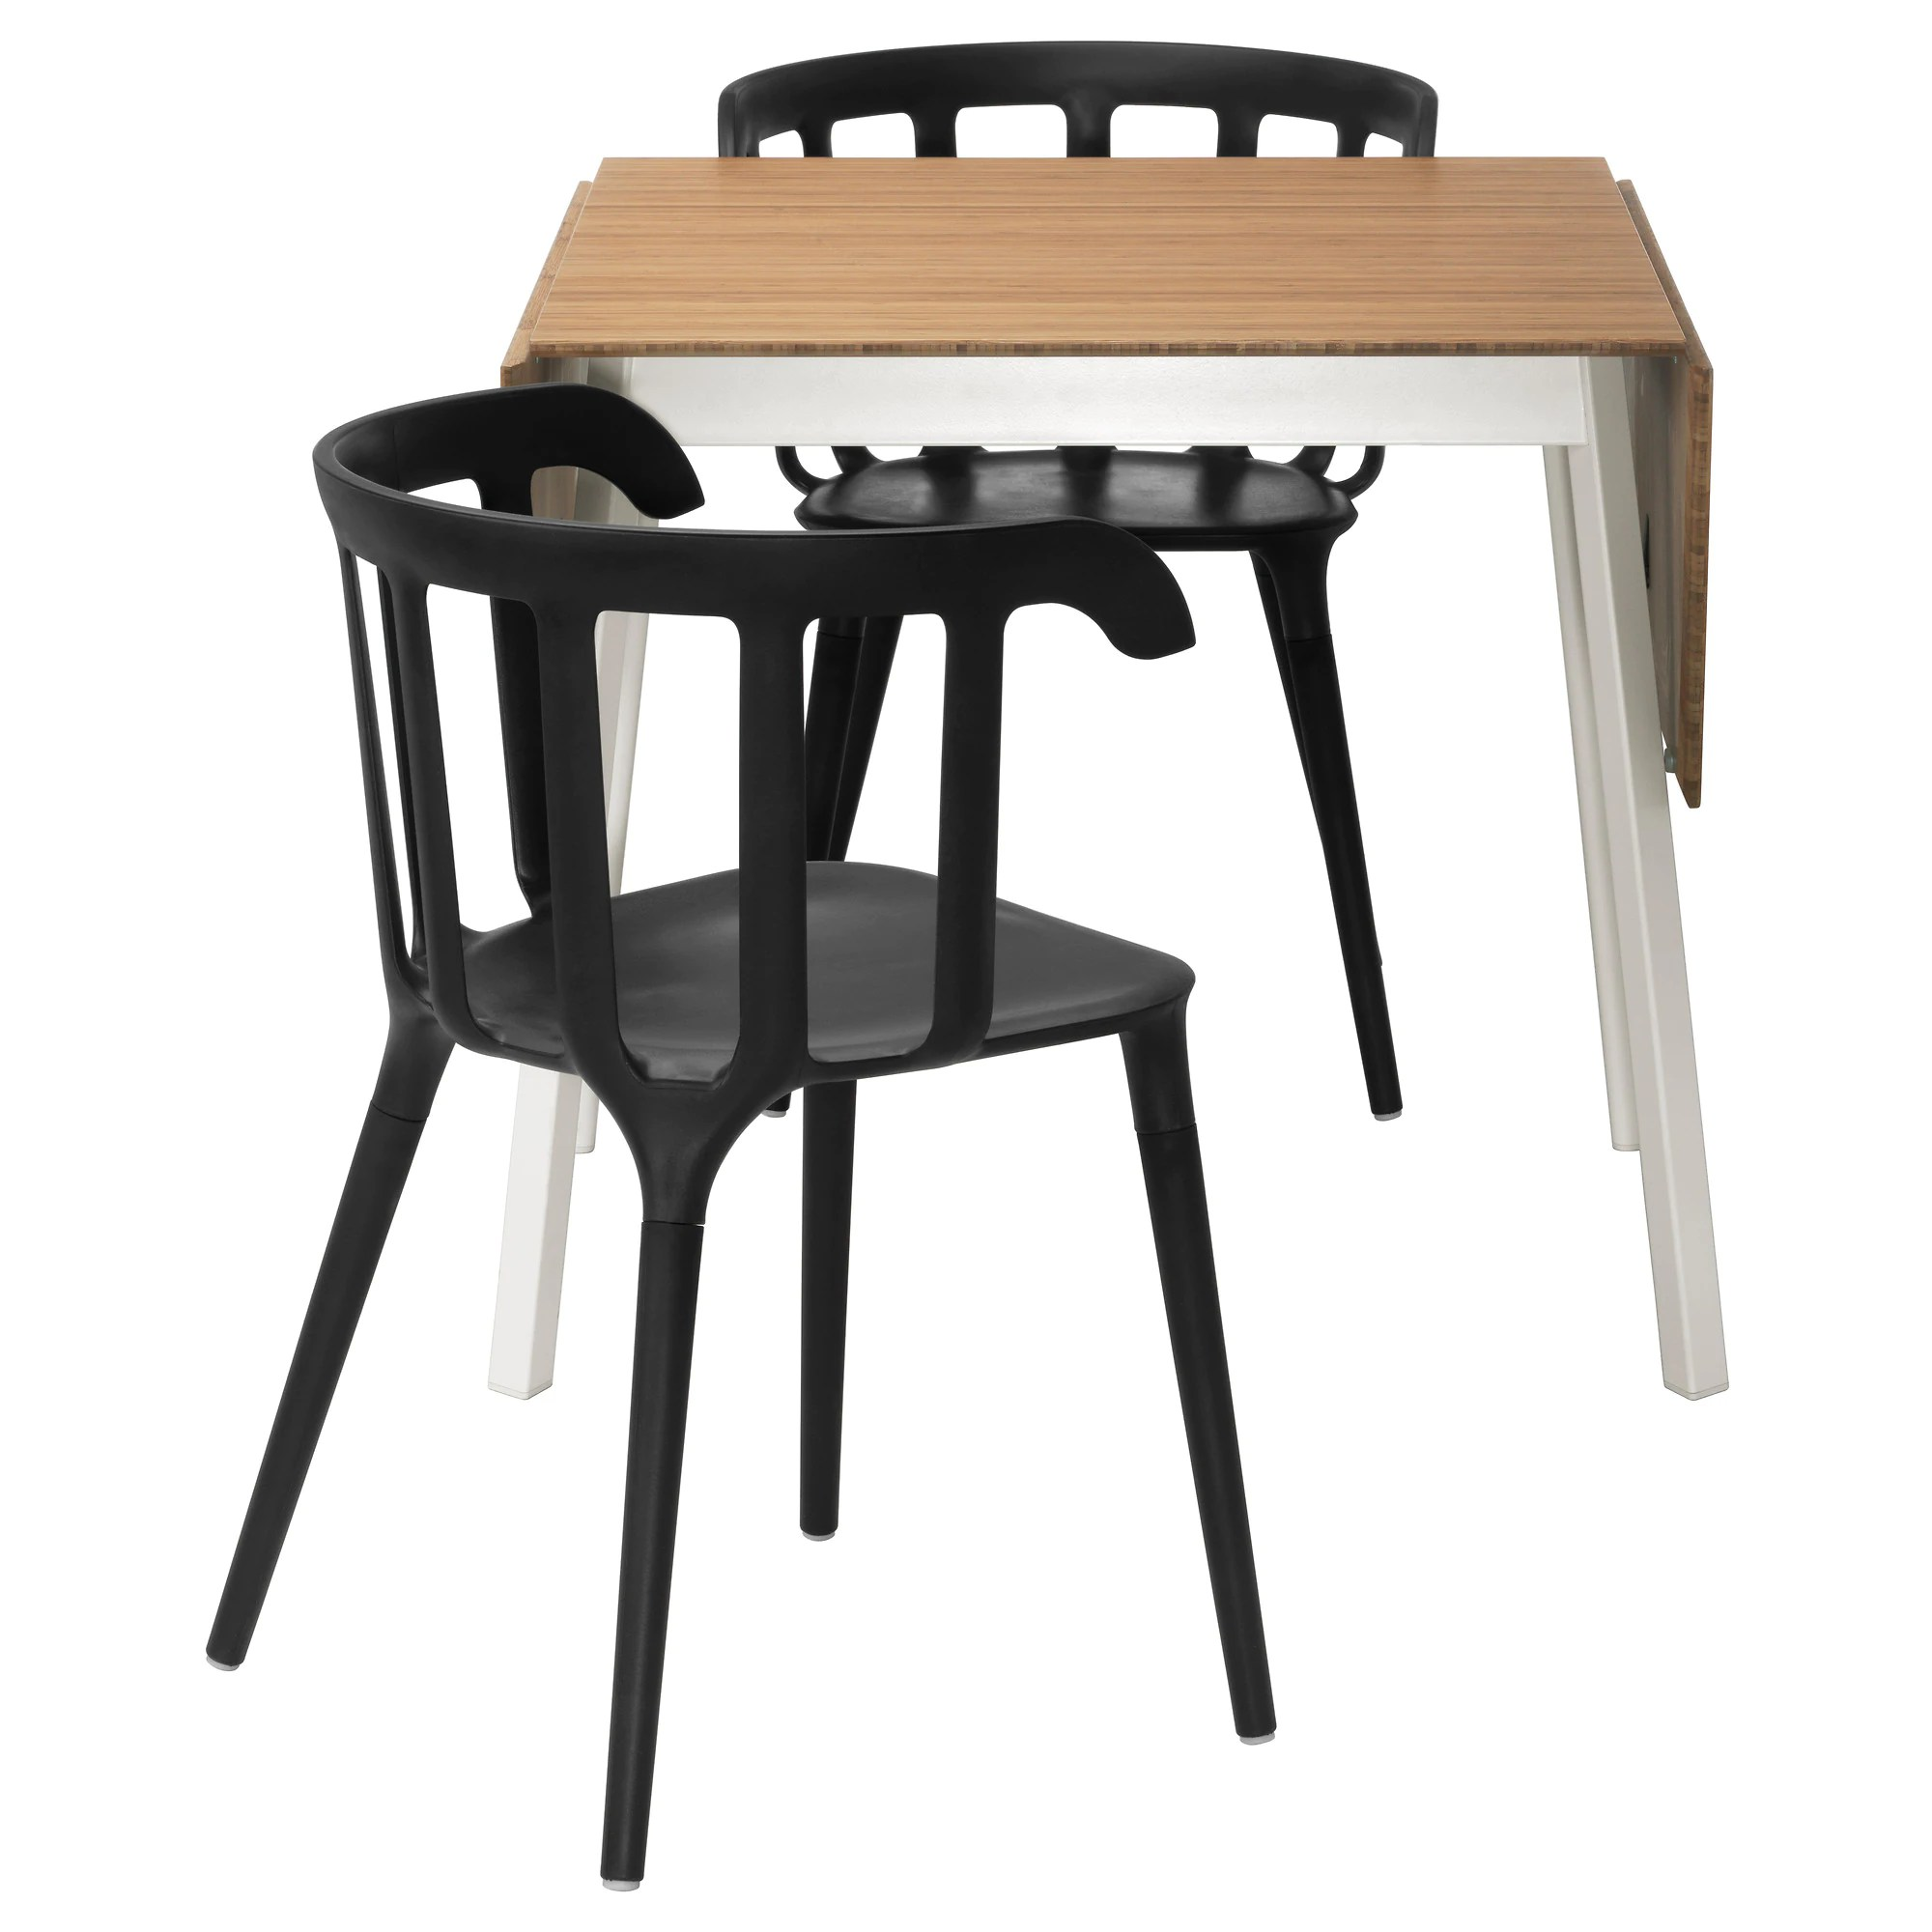 two seat kitchen table IKEA PS IKEA PS table and 2 chairs bamboo black Length